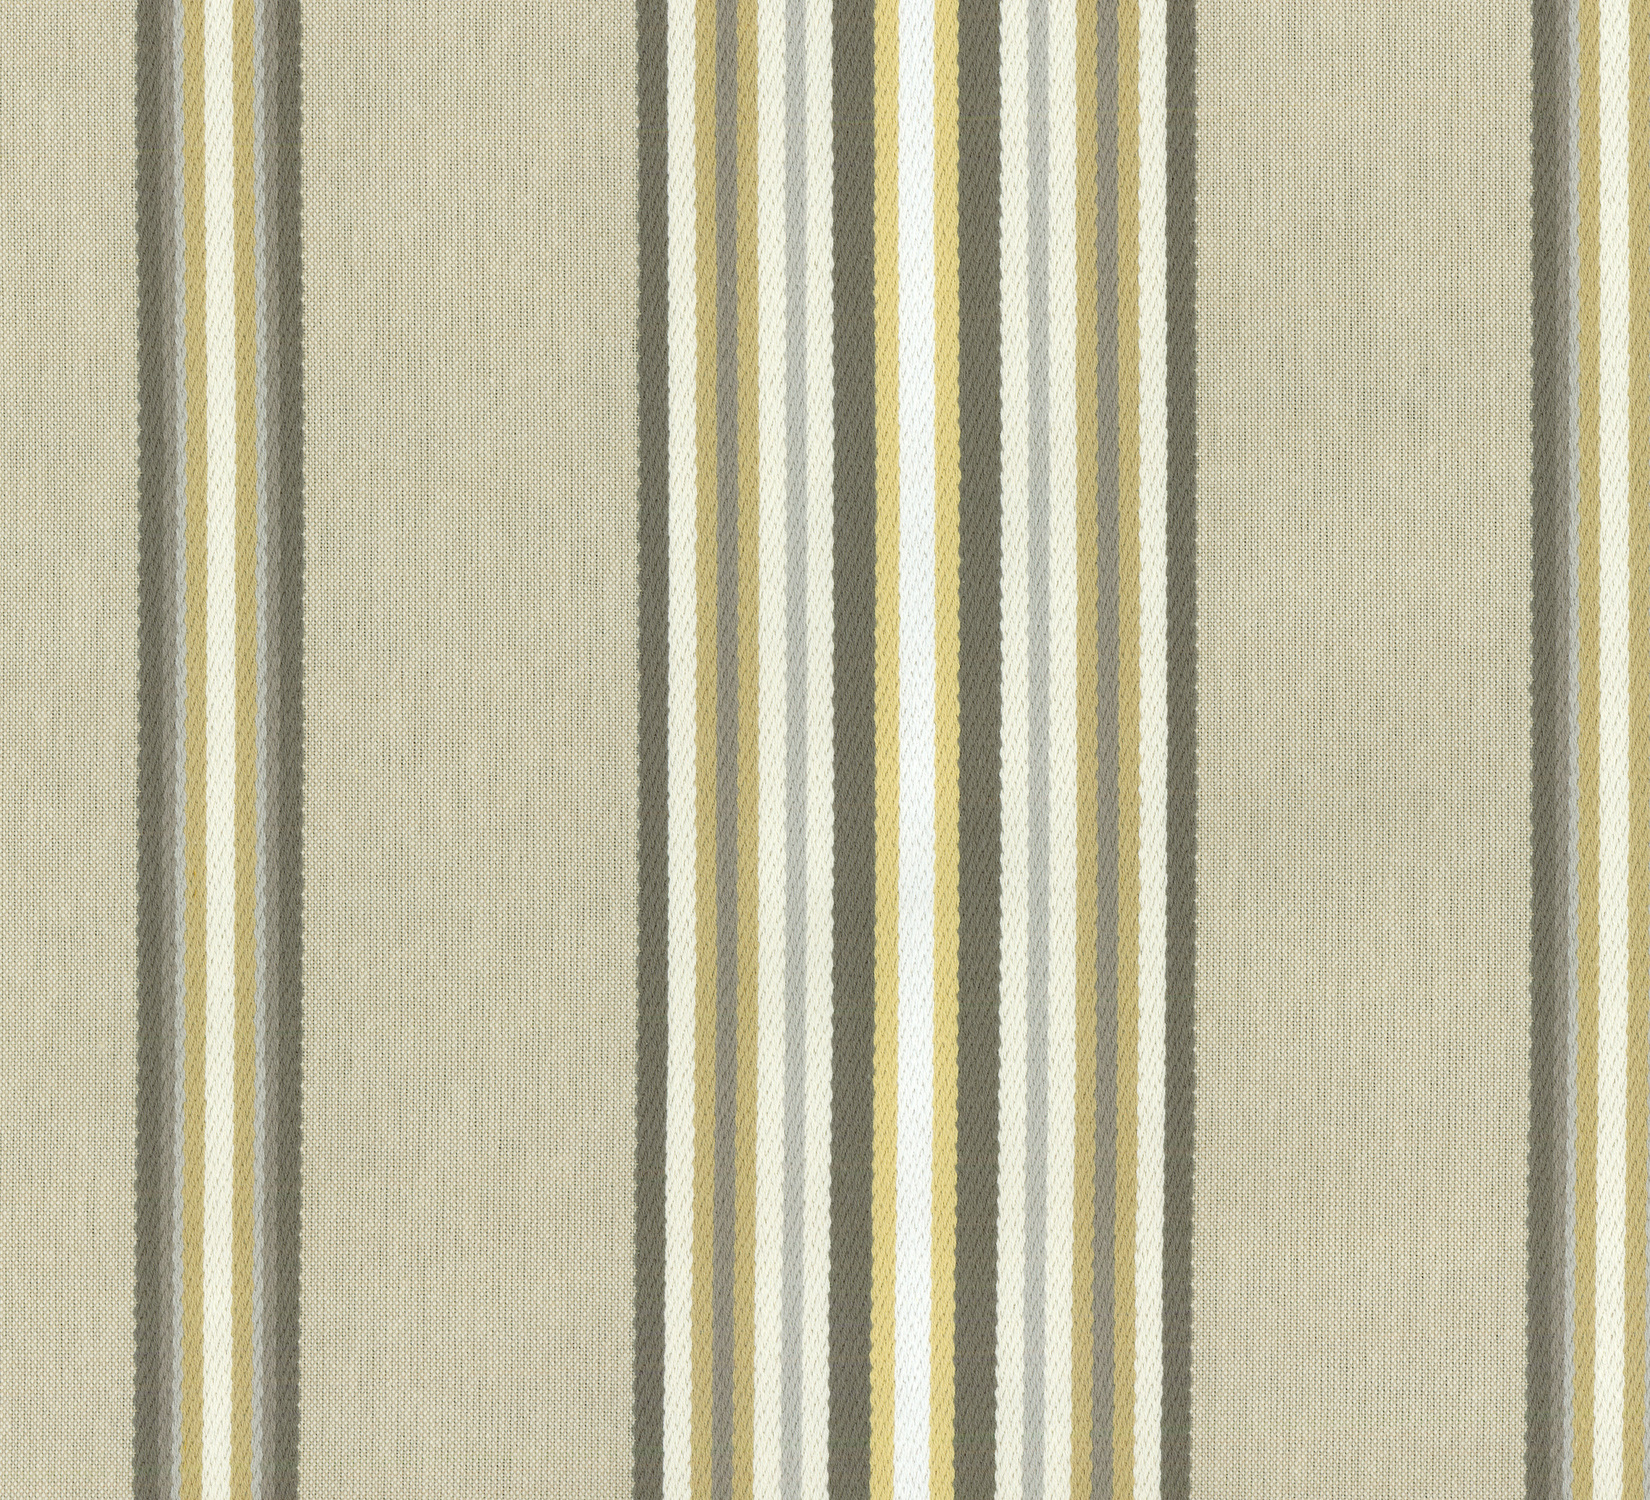 Waverly Upholstery Fabric-Liberty Stripe/Shale